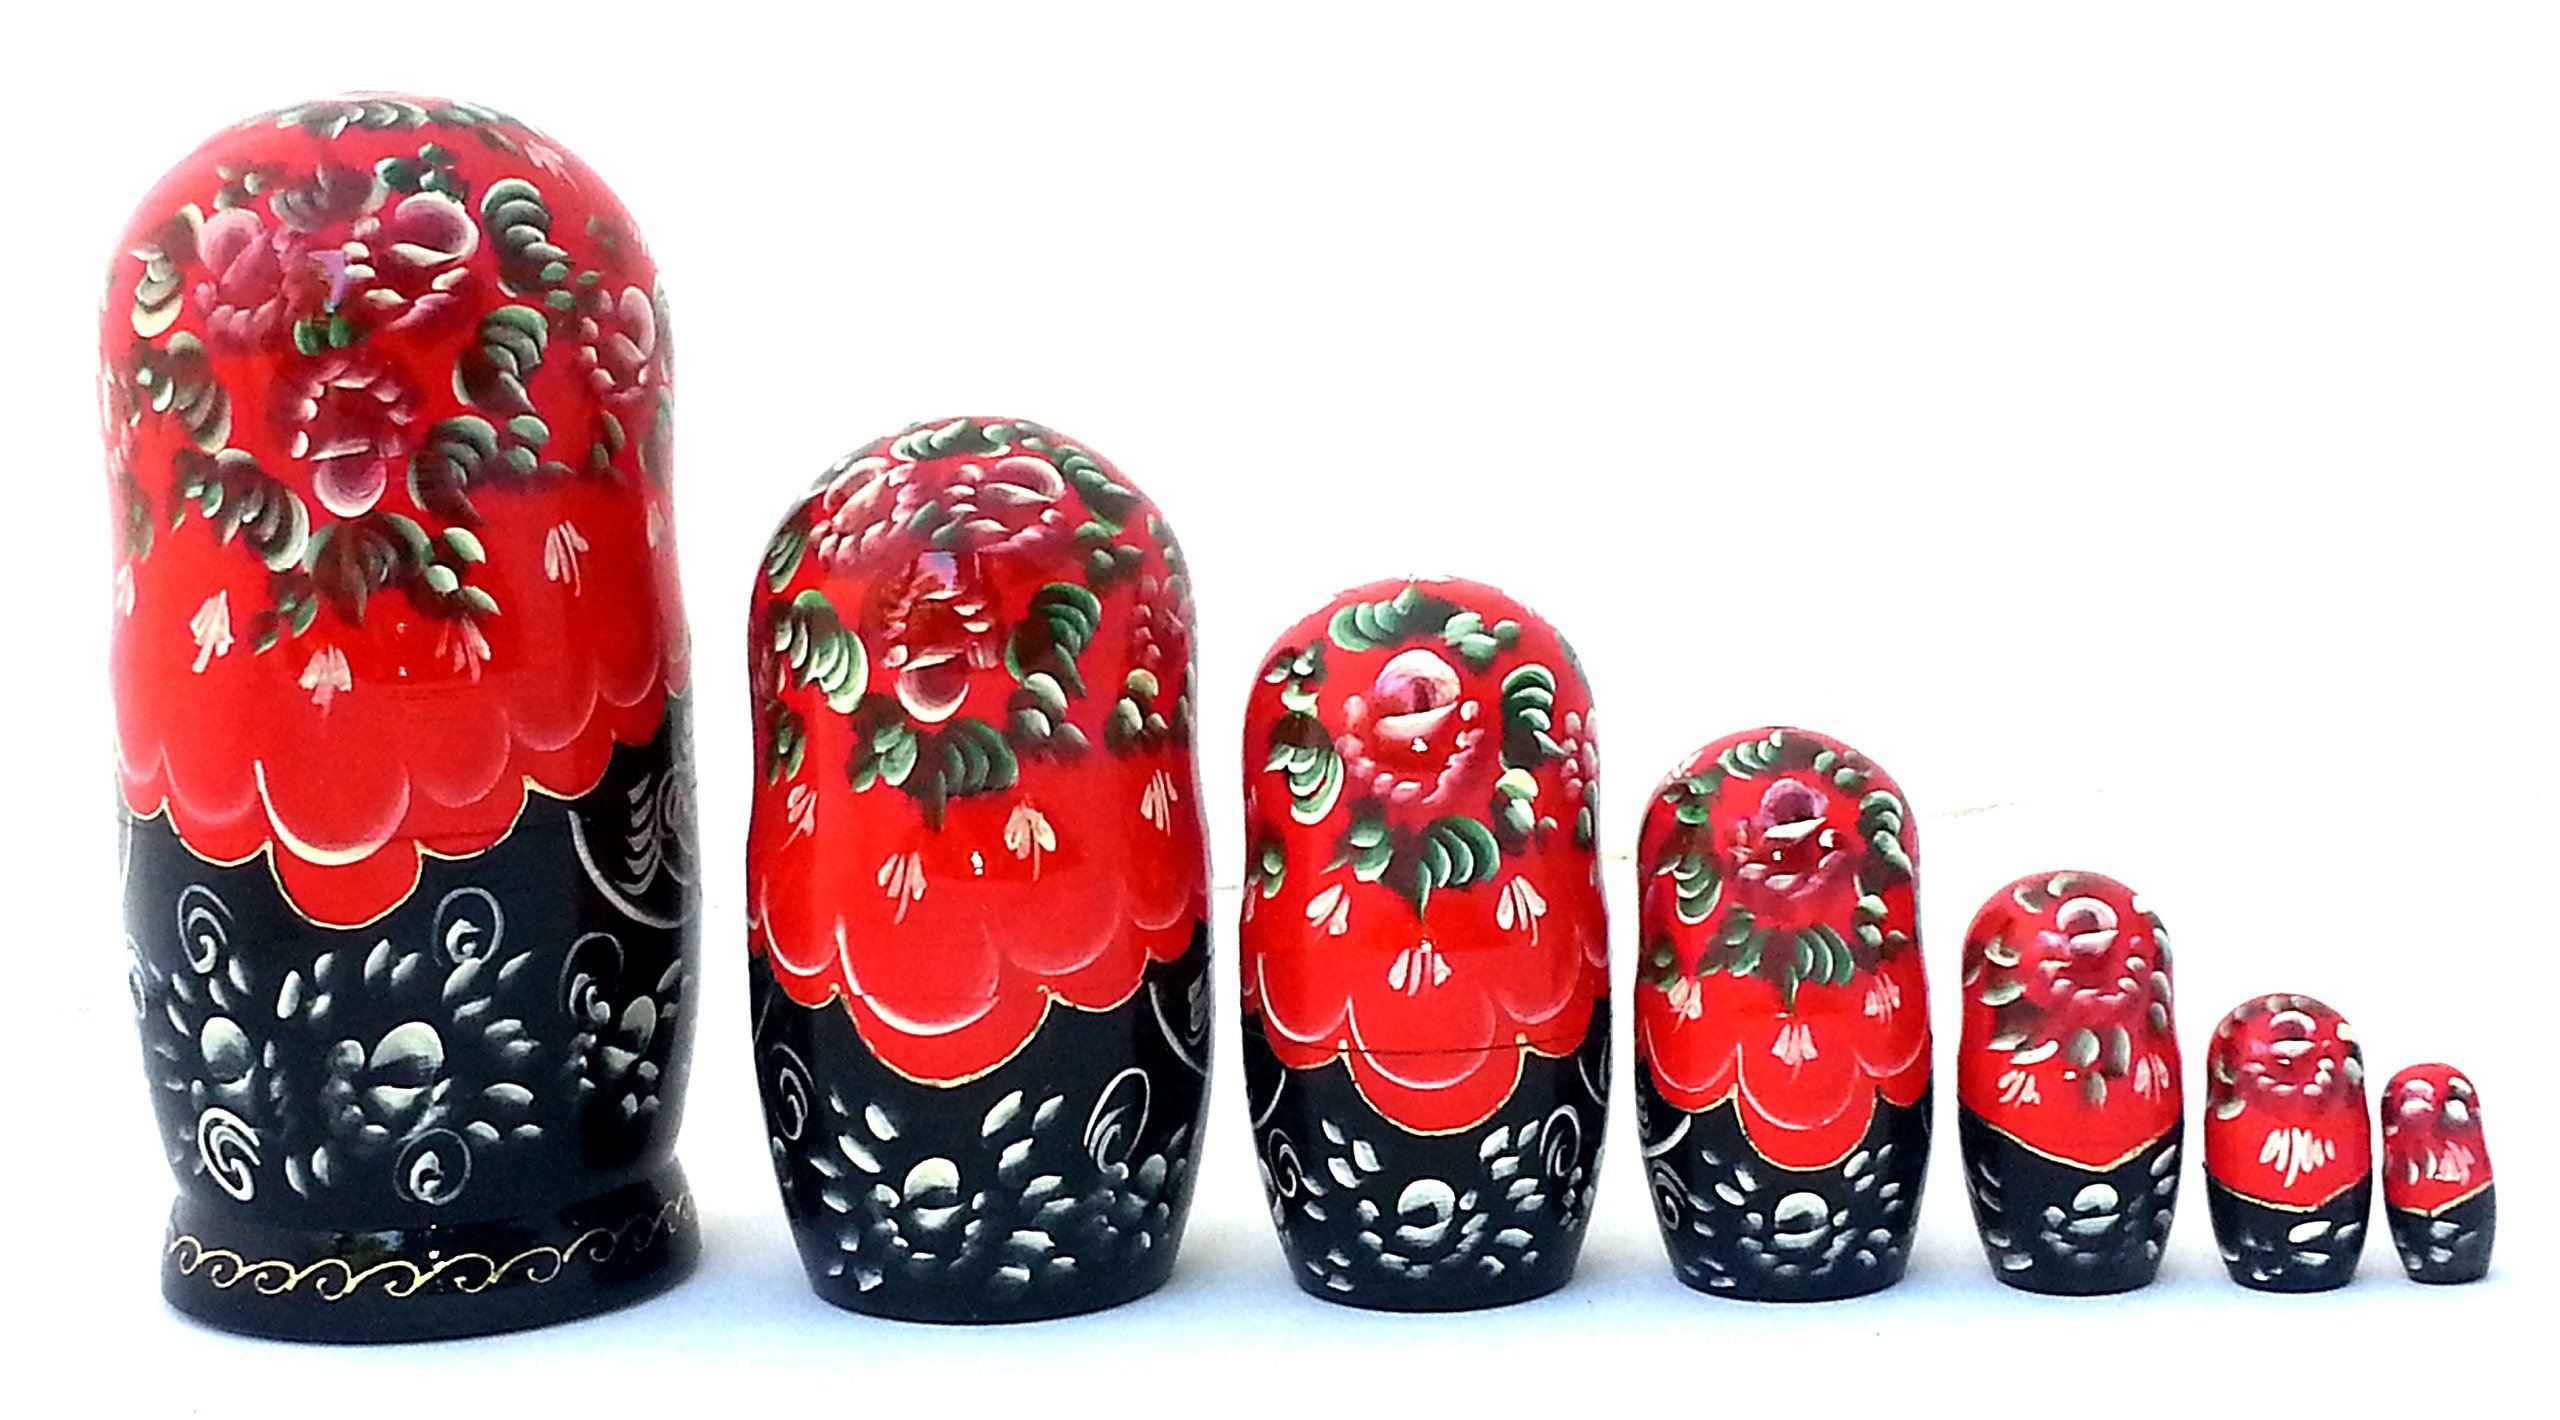 Nutcracker fairy tale Russian Hand Carved Hand Painted Nesting 7 piece DOLL Set 7'' tall / ballet by BuyRussianGifts (Image #4)